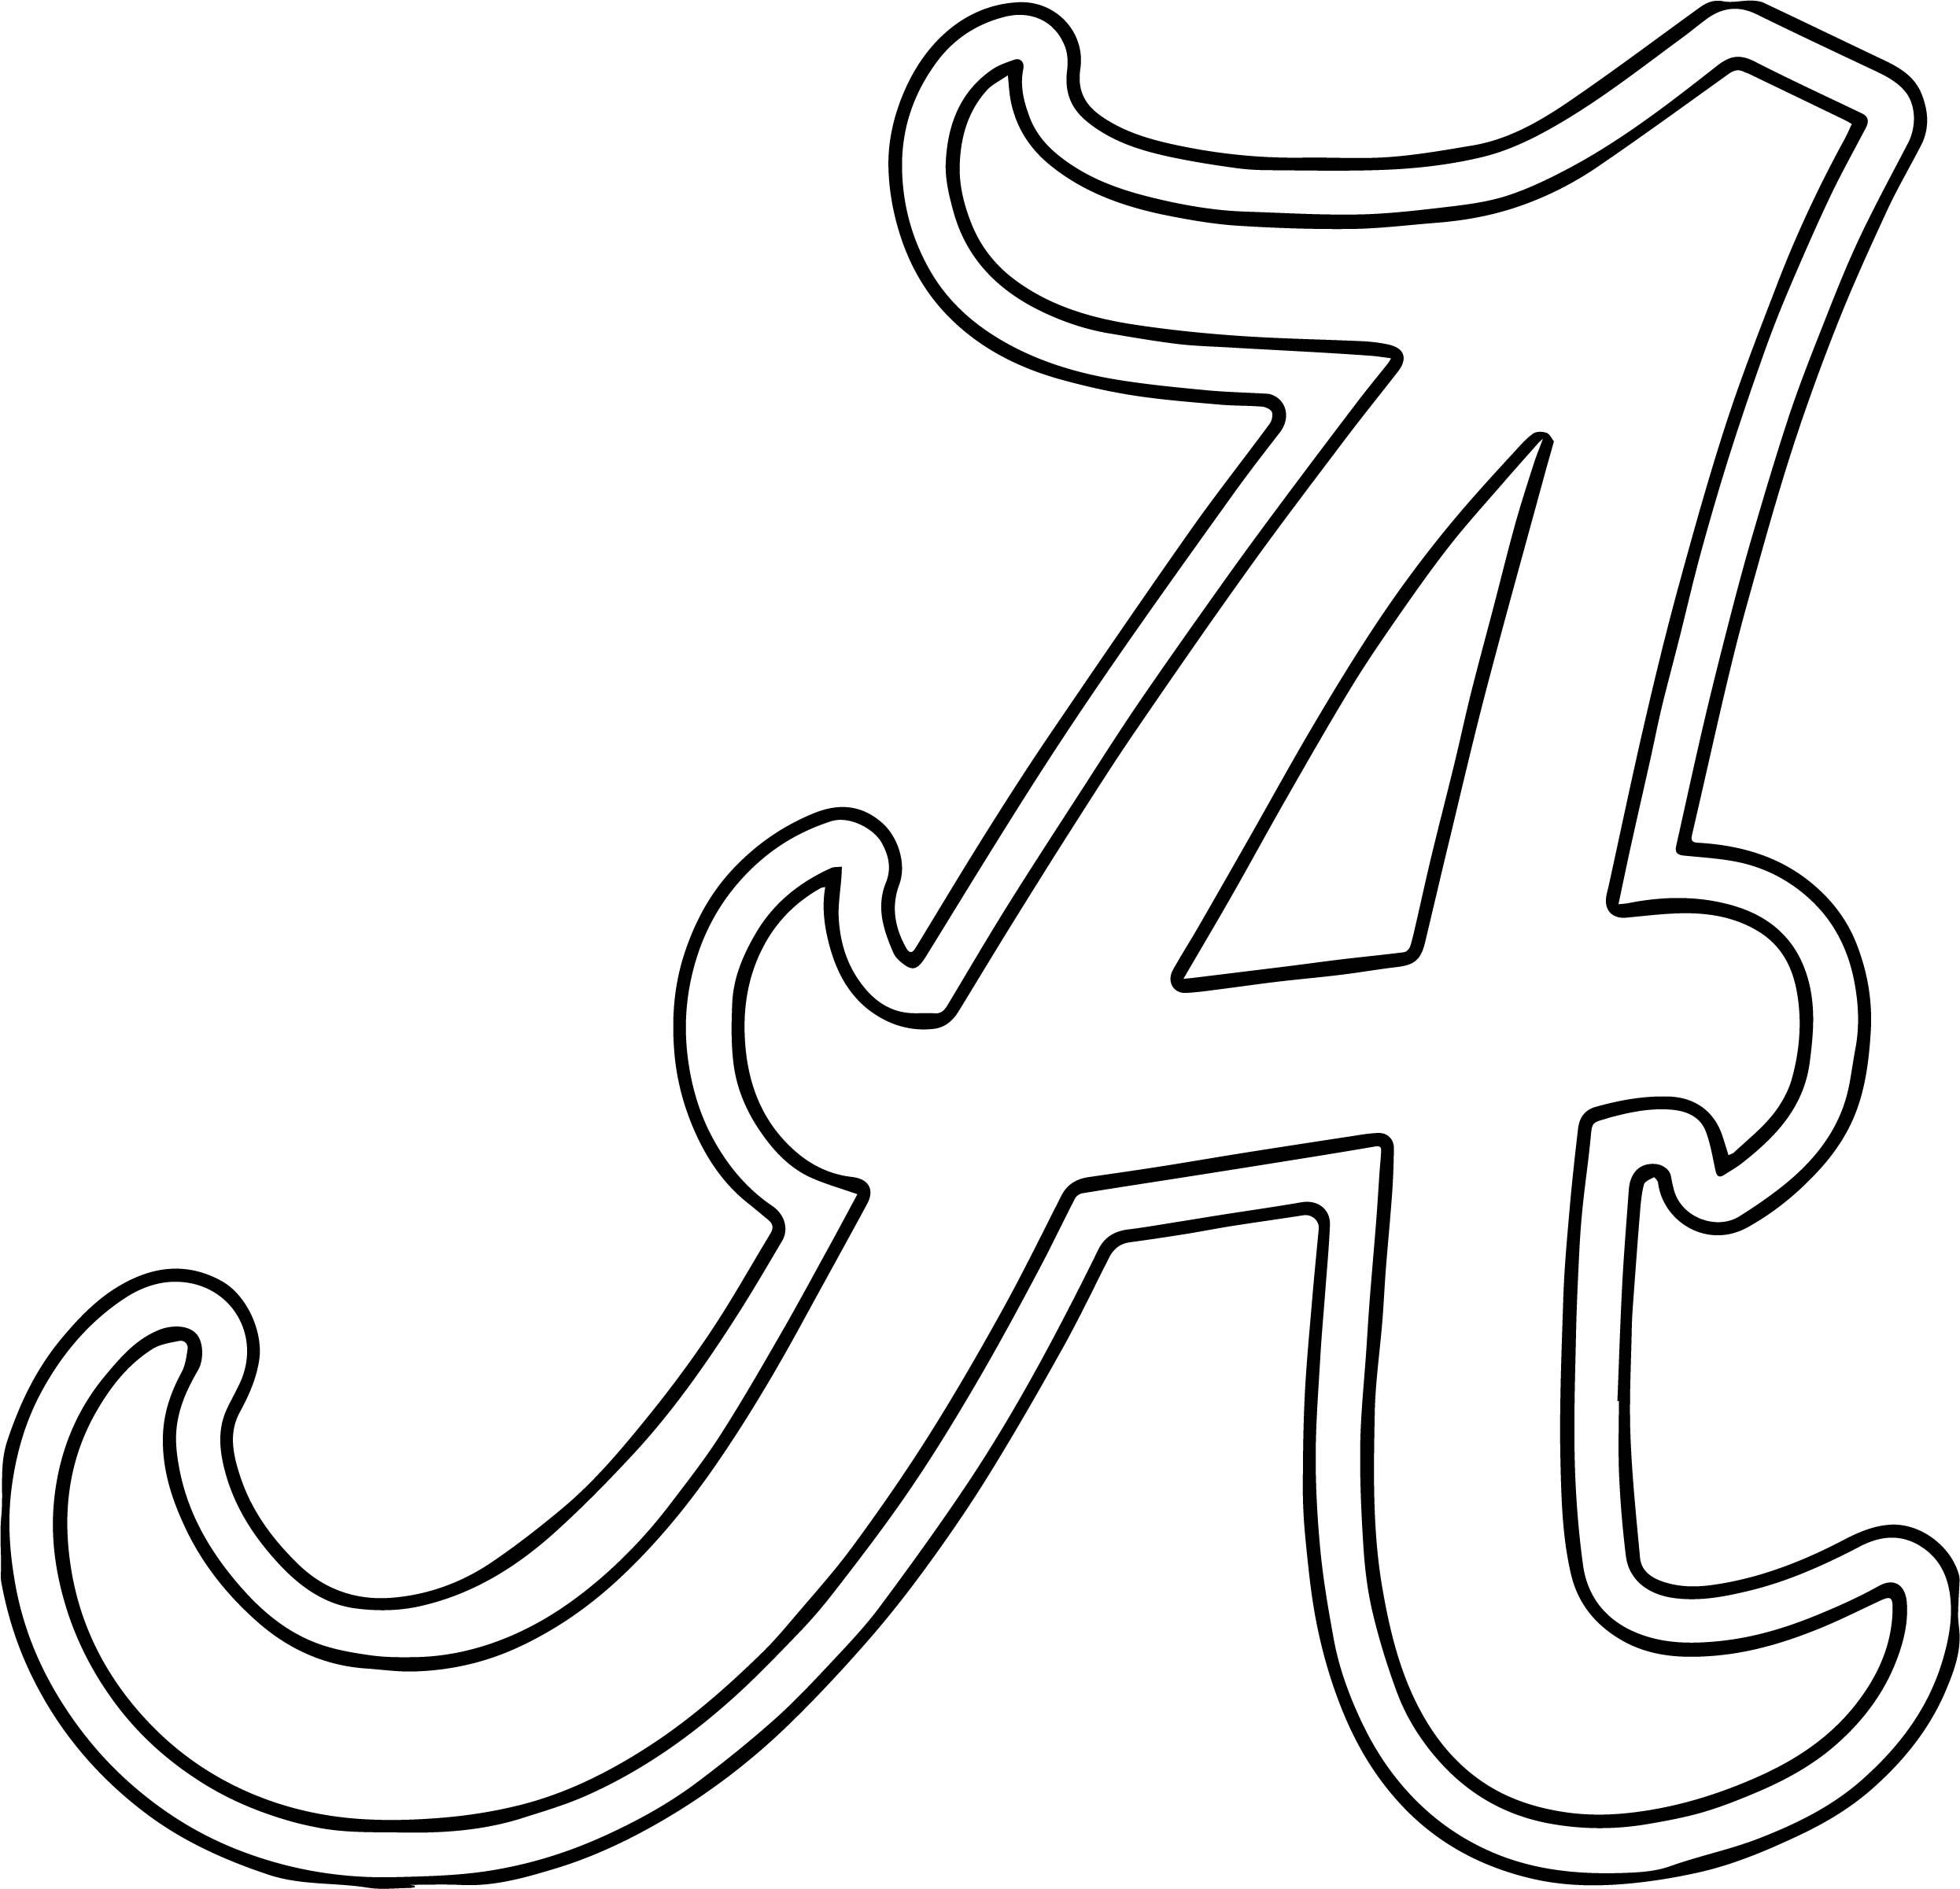 Alabama University Of Alabama A Text Coloring Page - Wecoloringpage ...